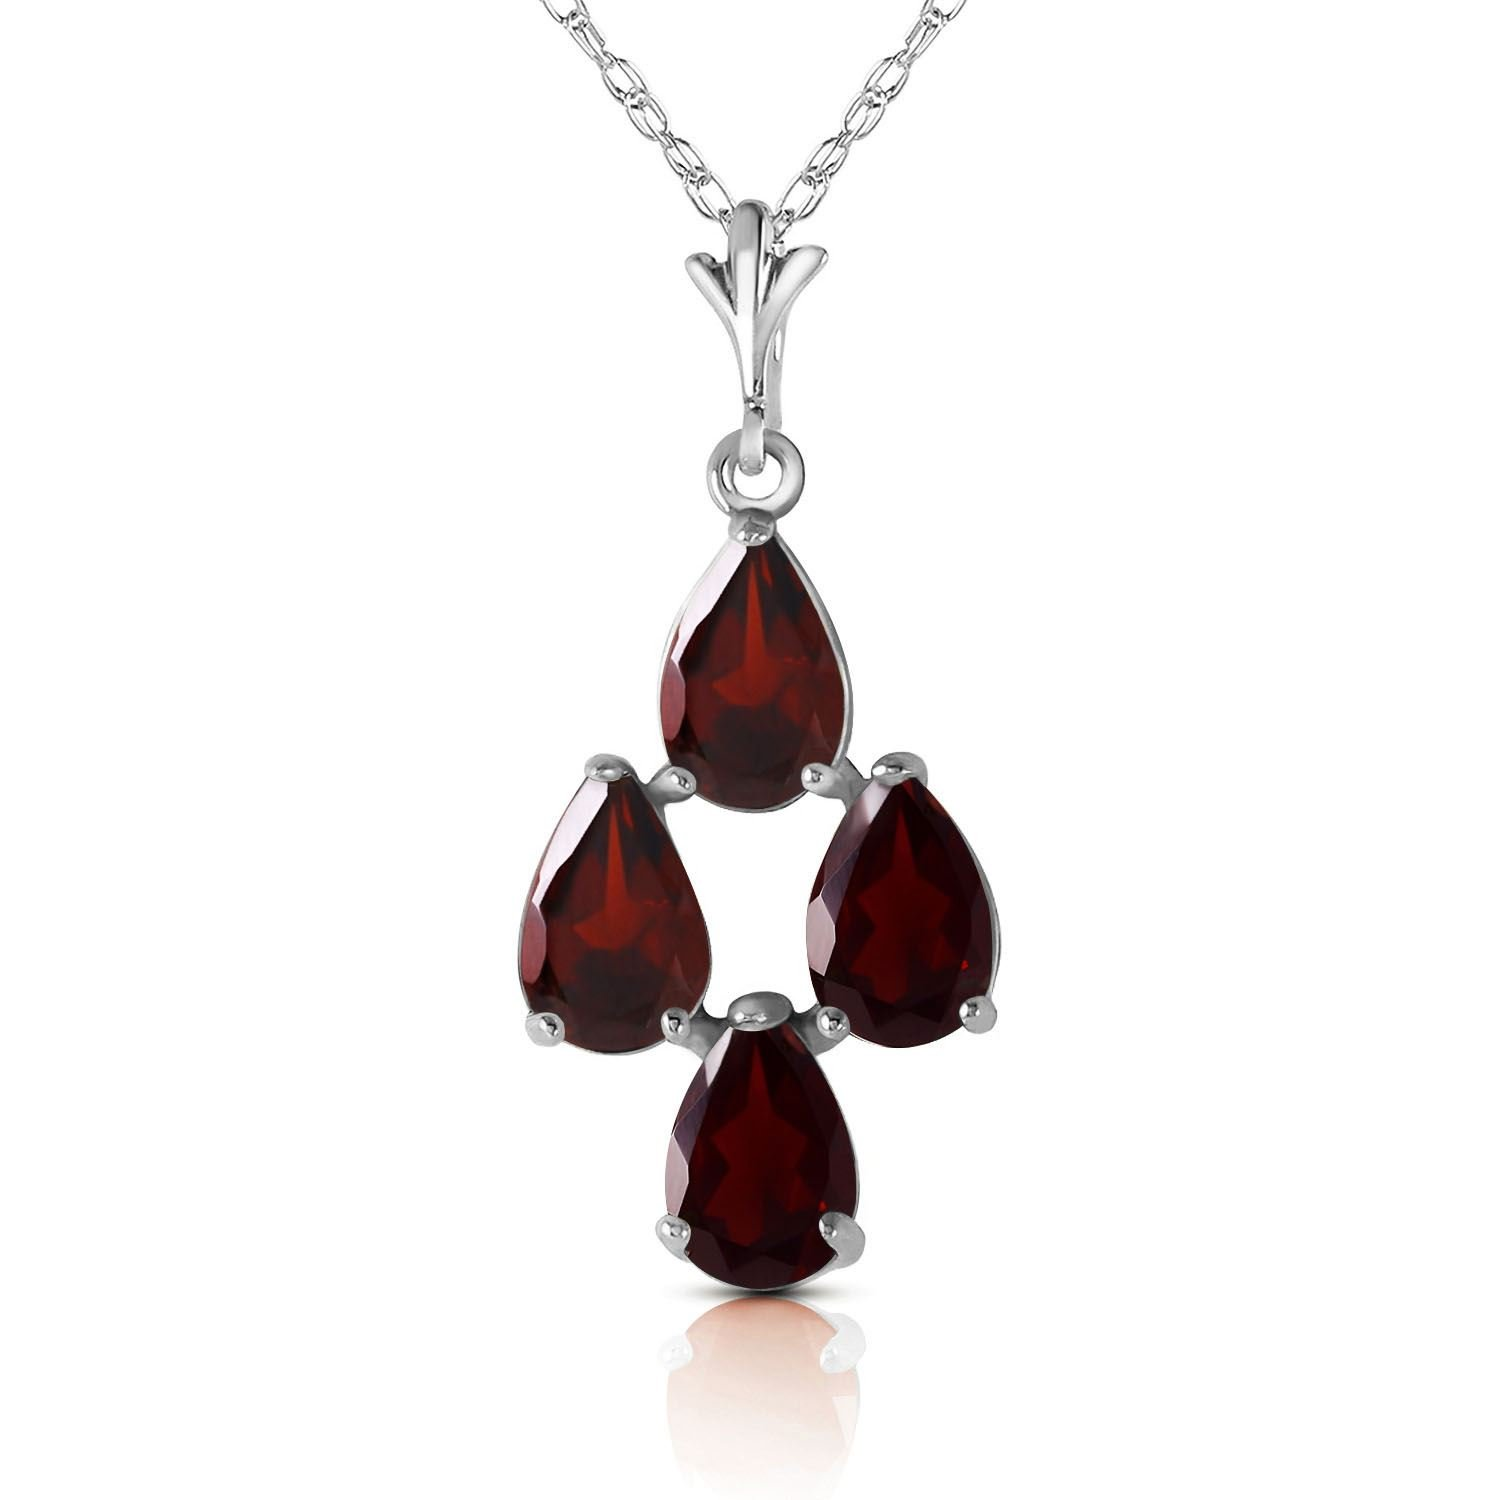 ALARRI 1.5 Carat 14K Solid White Gold Night Out Garnet Necklace with 20 Inch Chain Length